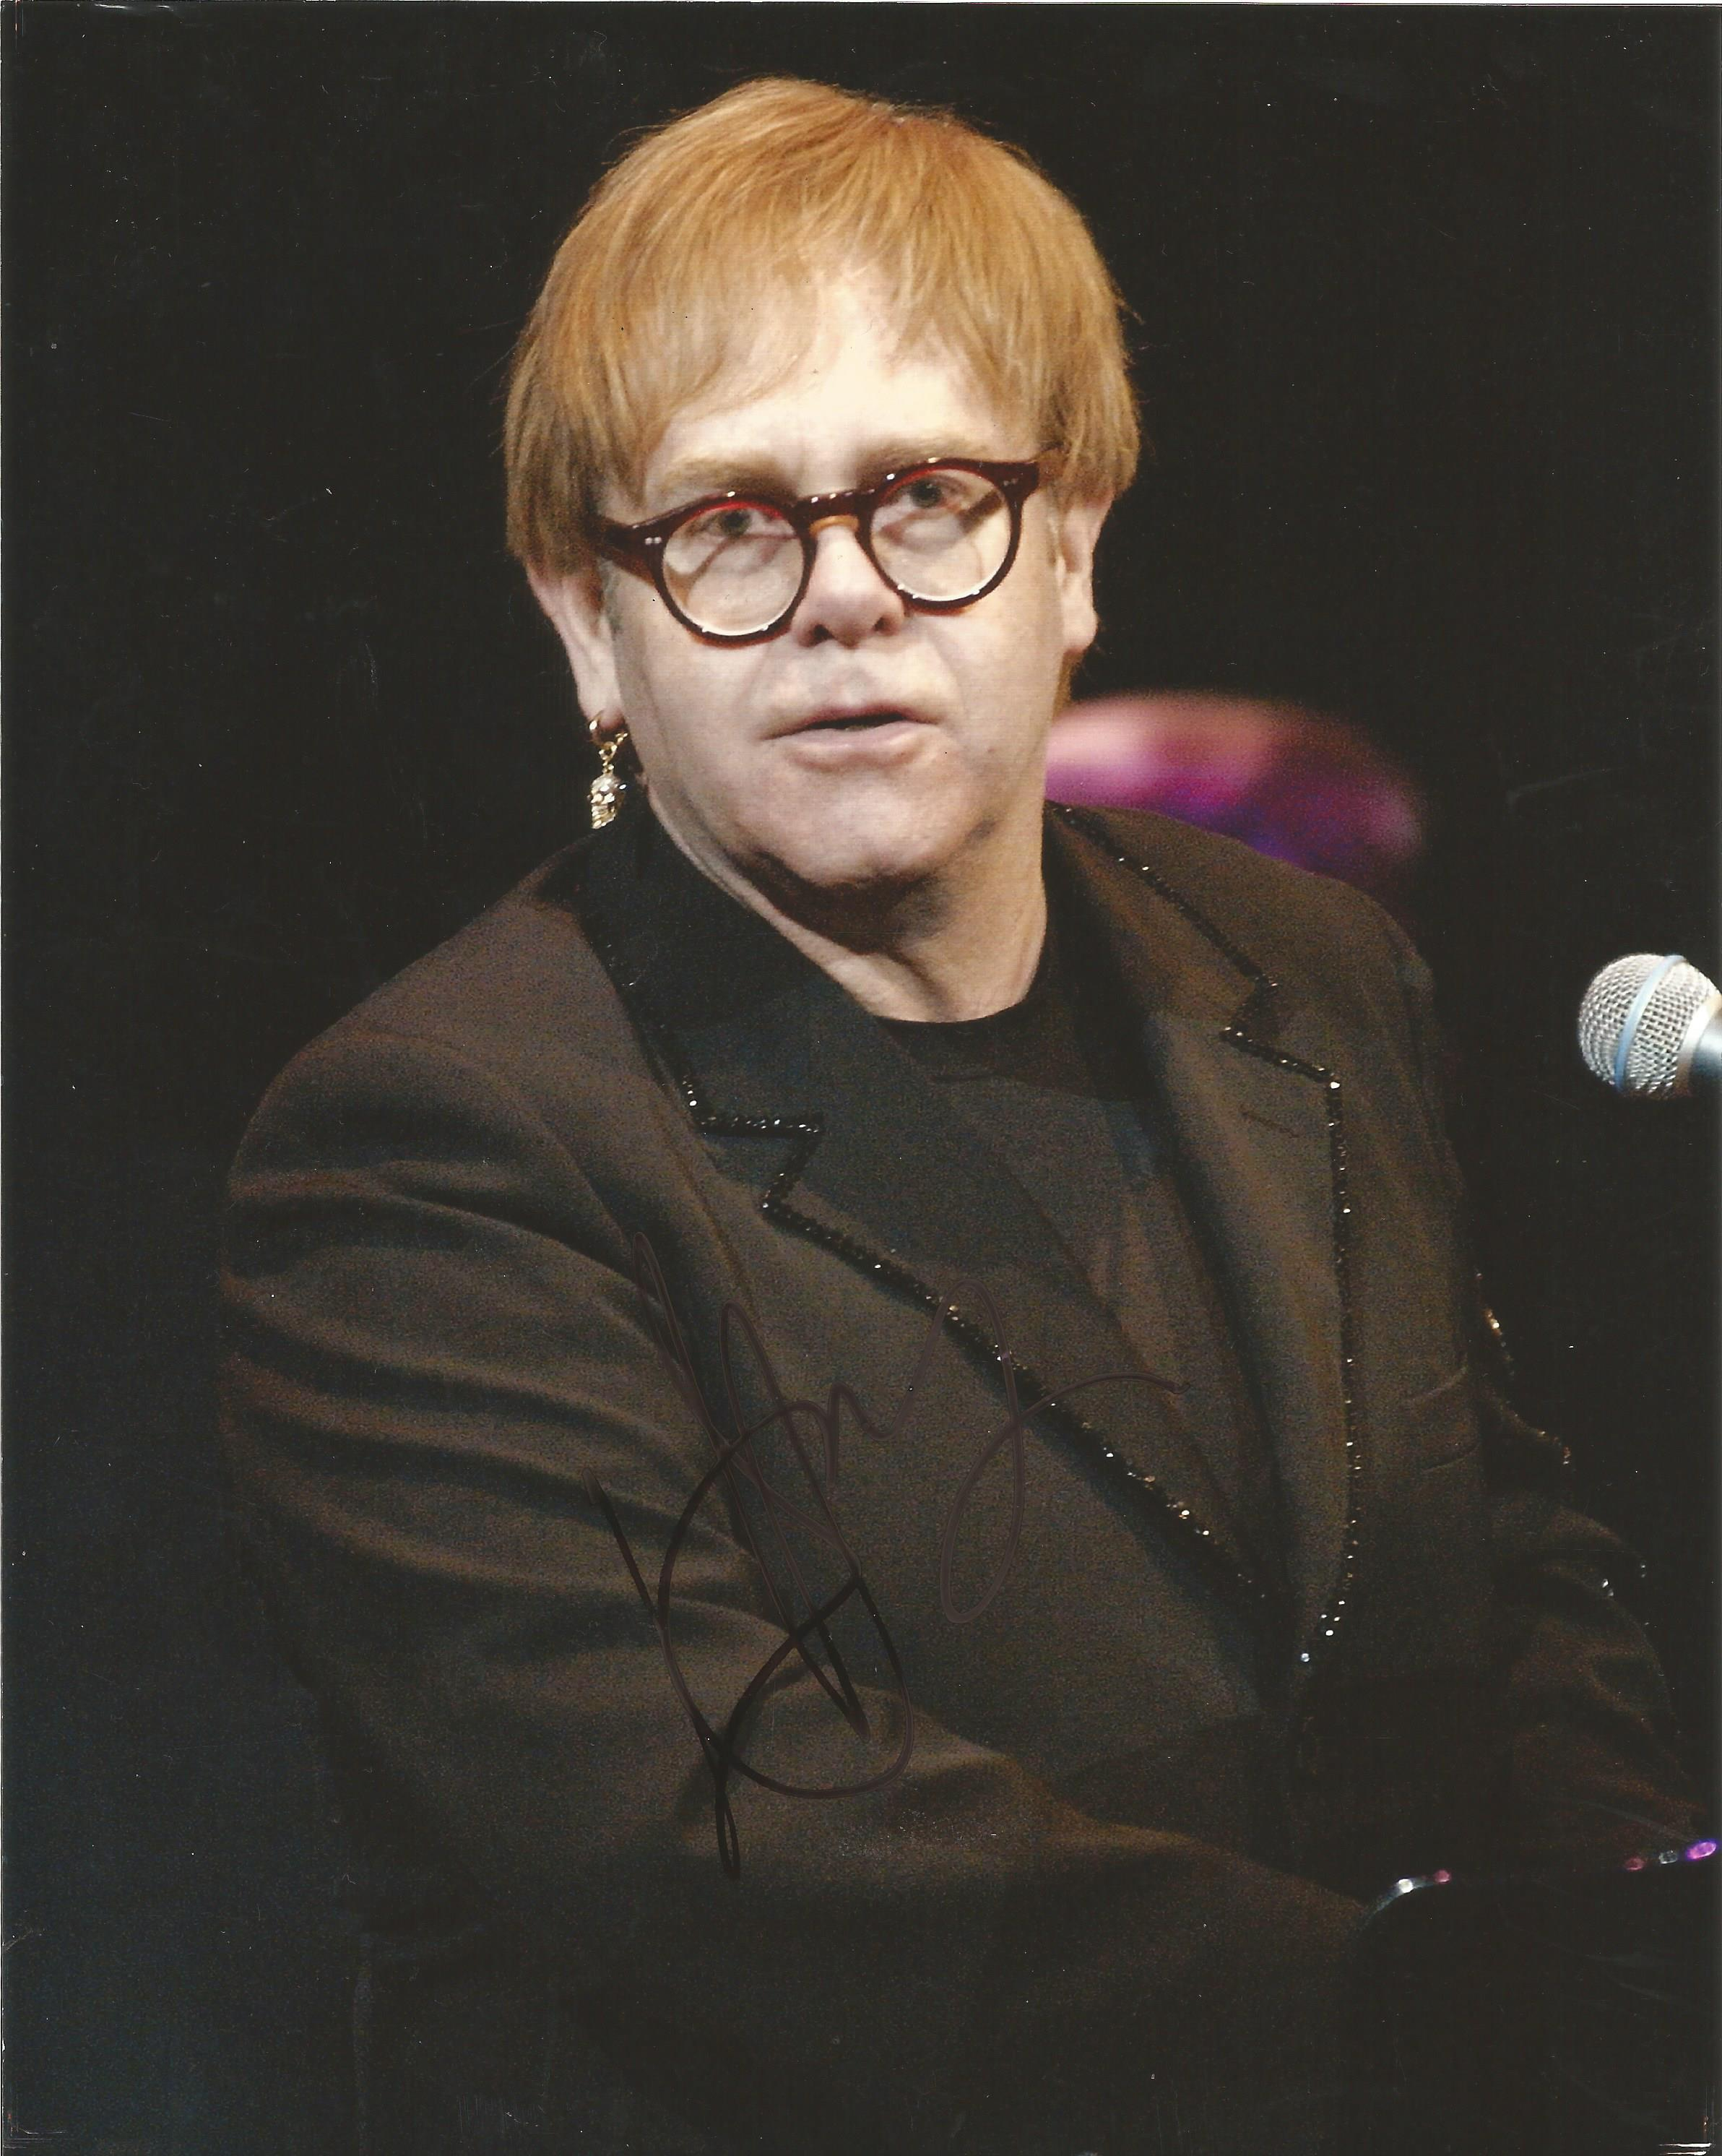 Lot 52 - Elton John signed 10 x 8 colour Music Promo Portrait Photo, from in person collection autographed at